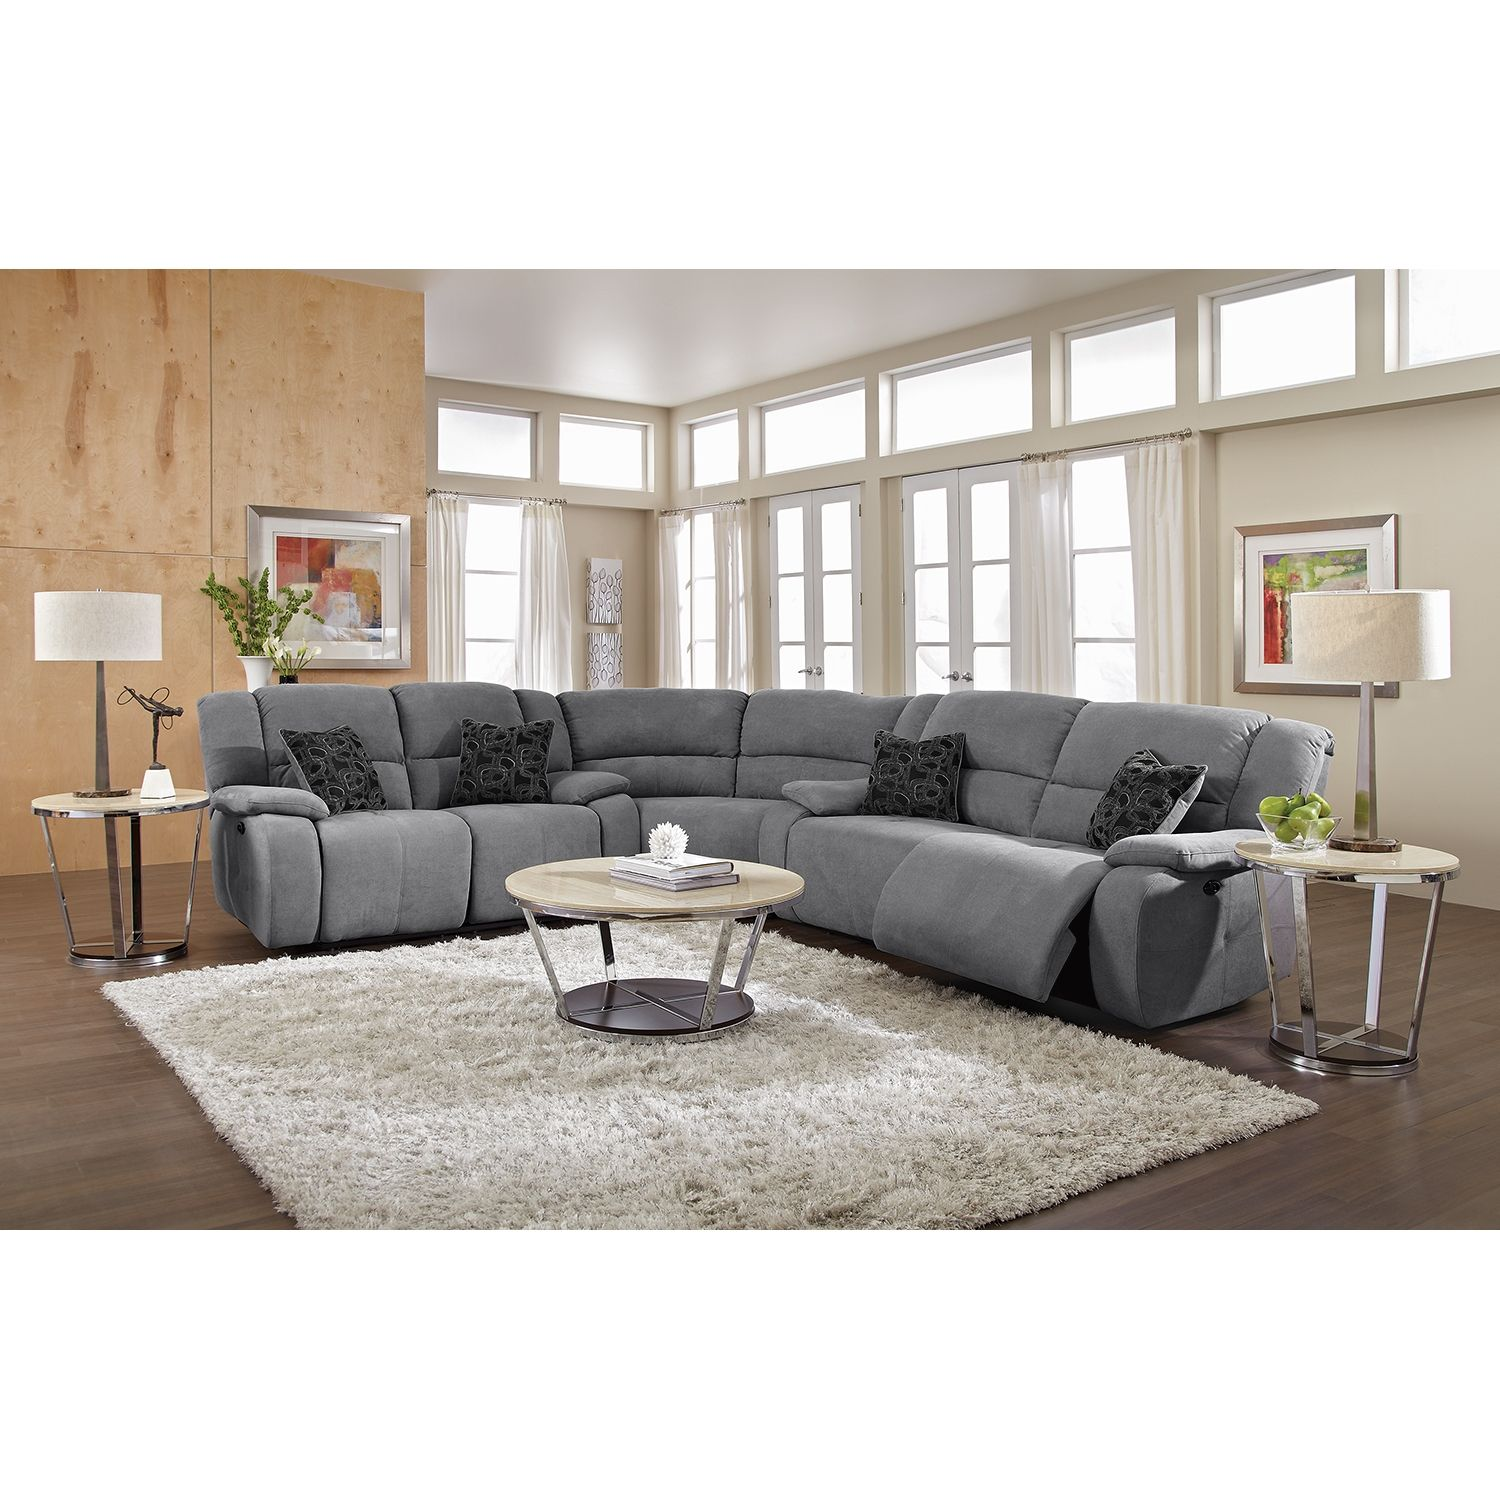 Love this couch gray is awesome future living room for Living room suites furniture